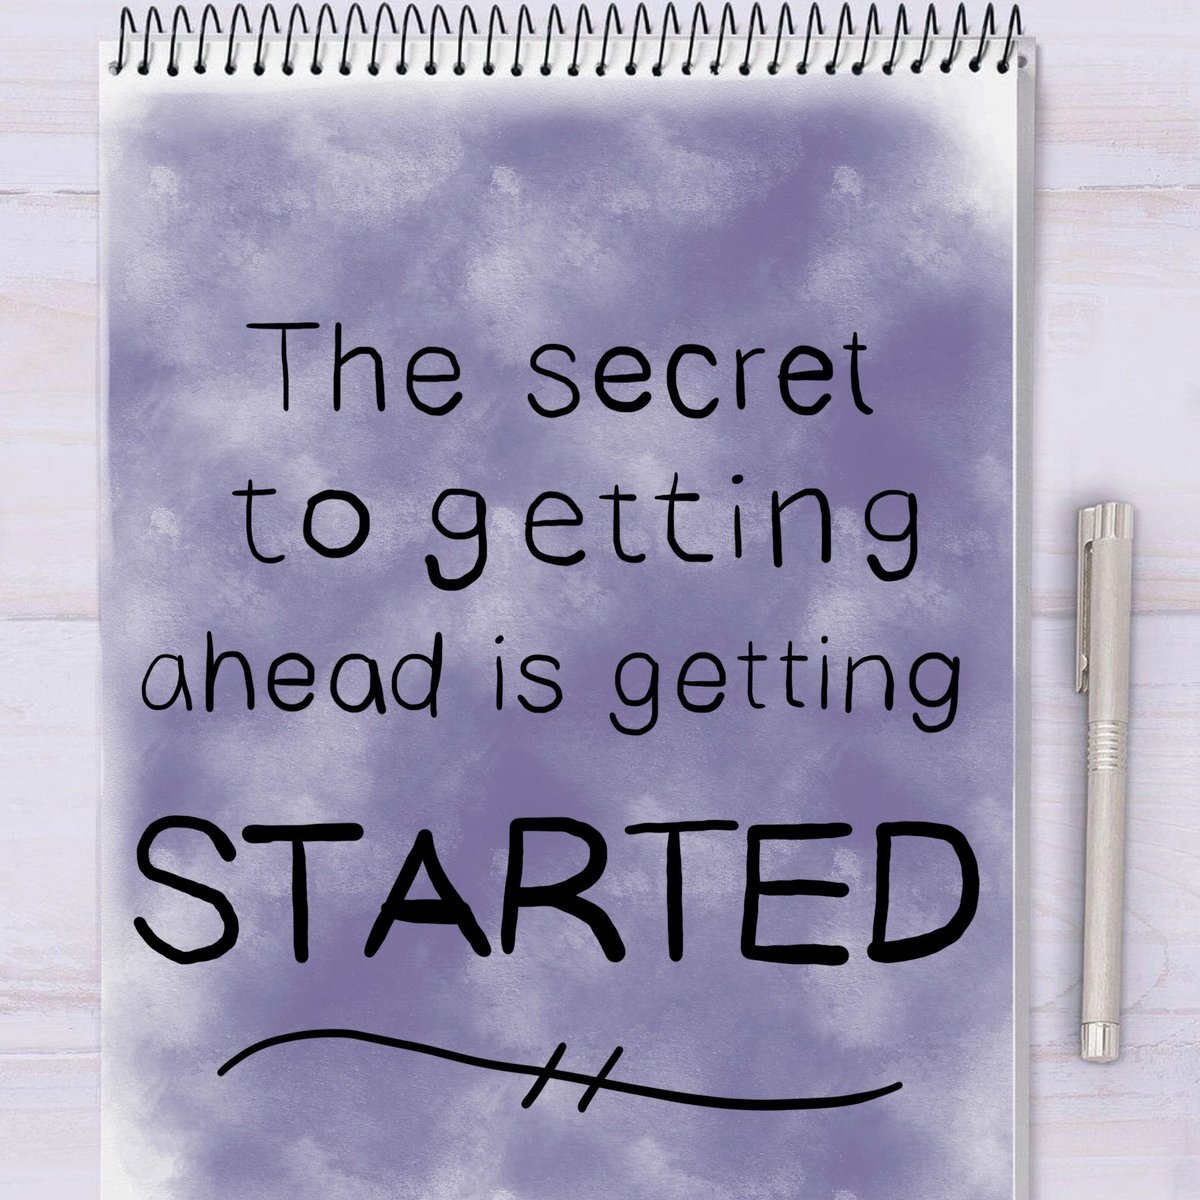 Every step forward is a step in the right direction! #LocalNetworks #entrepreneur #smallbusinessowners #motivationalquotes pic.twitter.com/P2Y2n5Pecr